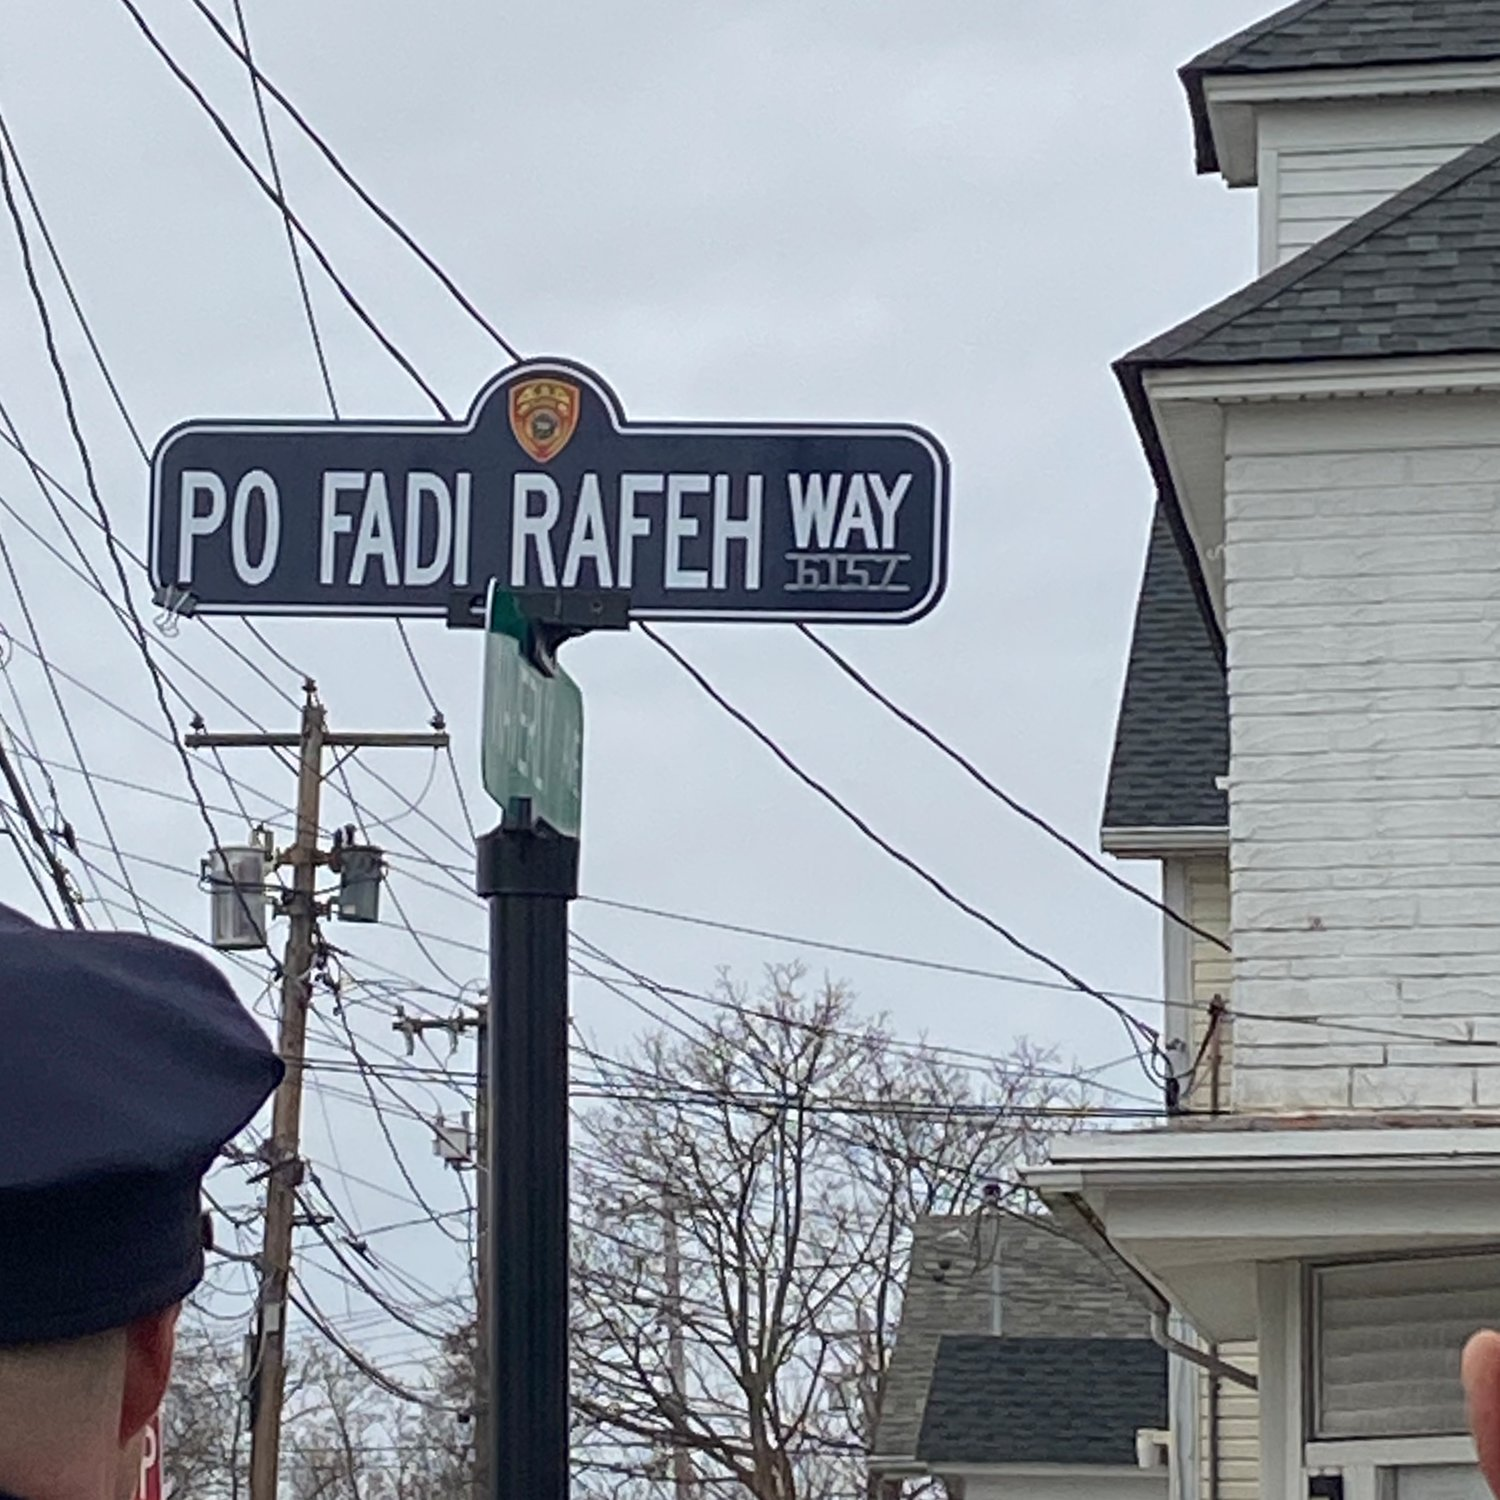 West 2nd Street where the 5th precinct is located is now named for the fallen officer.